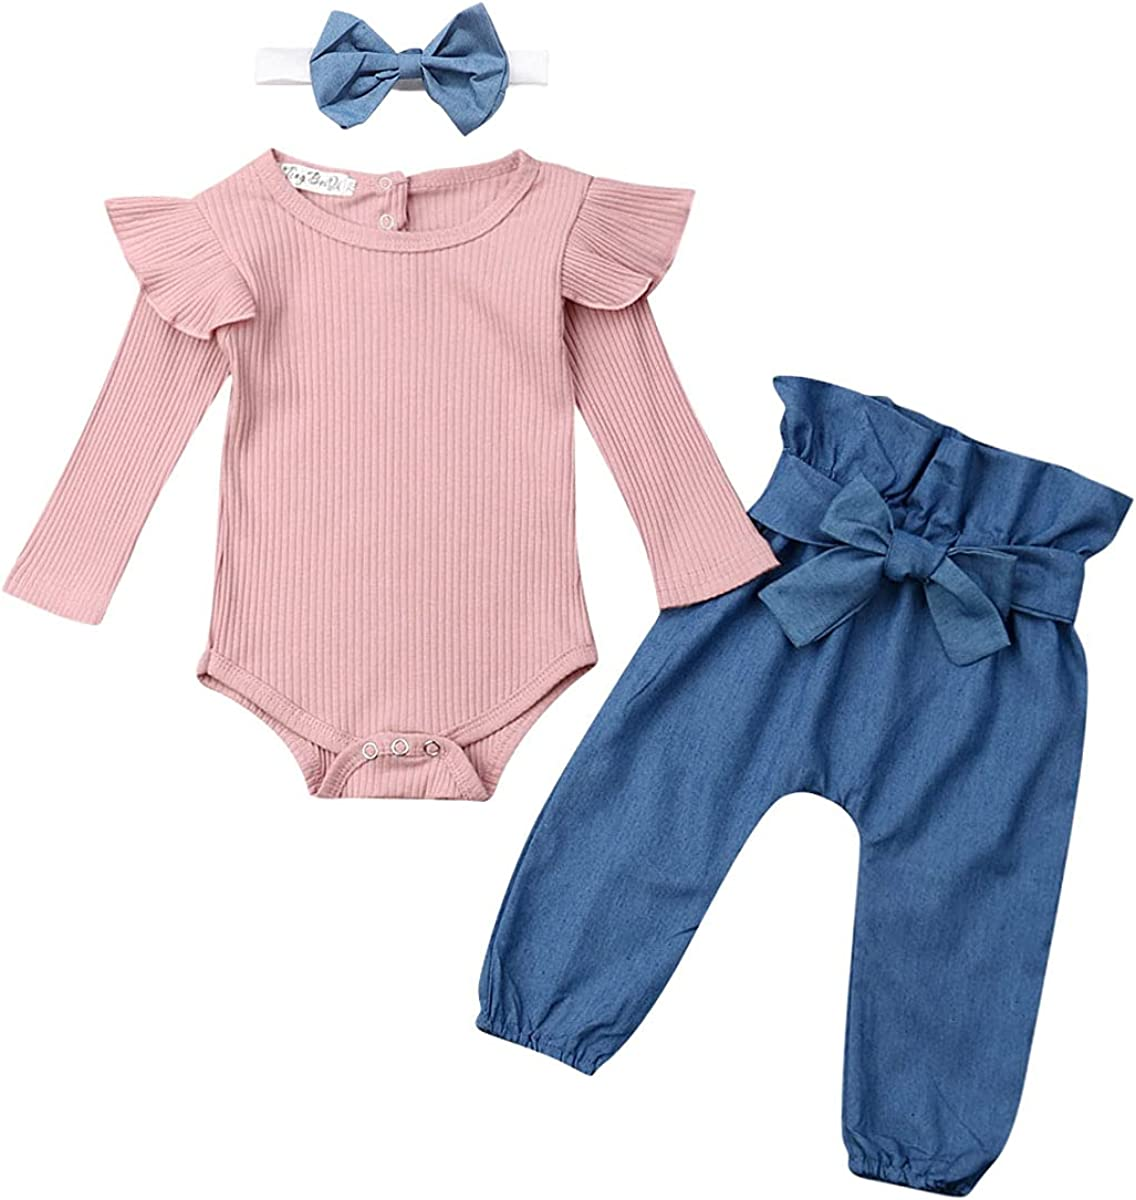 EQSJIU Newborn Infant Baby Girl Winter Clothes Ribbed Onesies Pants Set with Headband Outfits